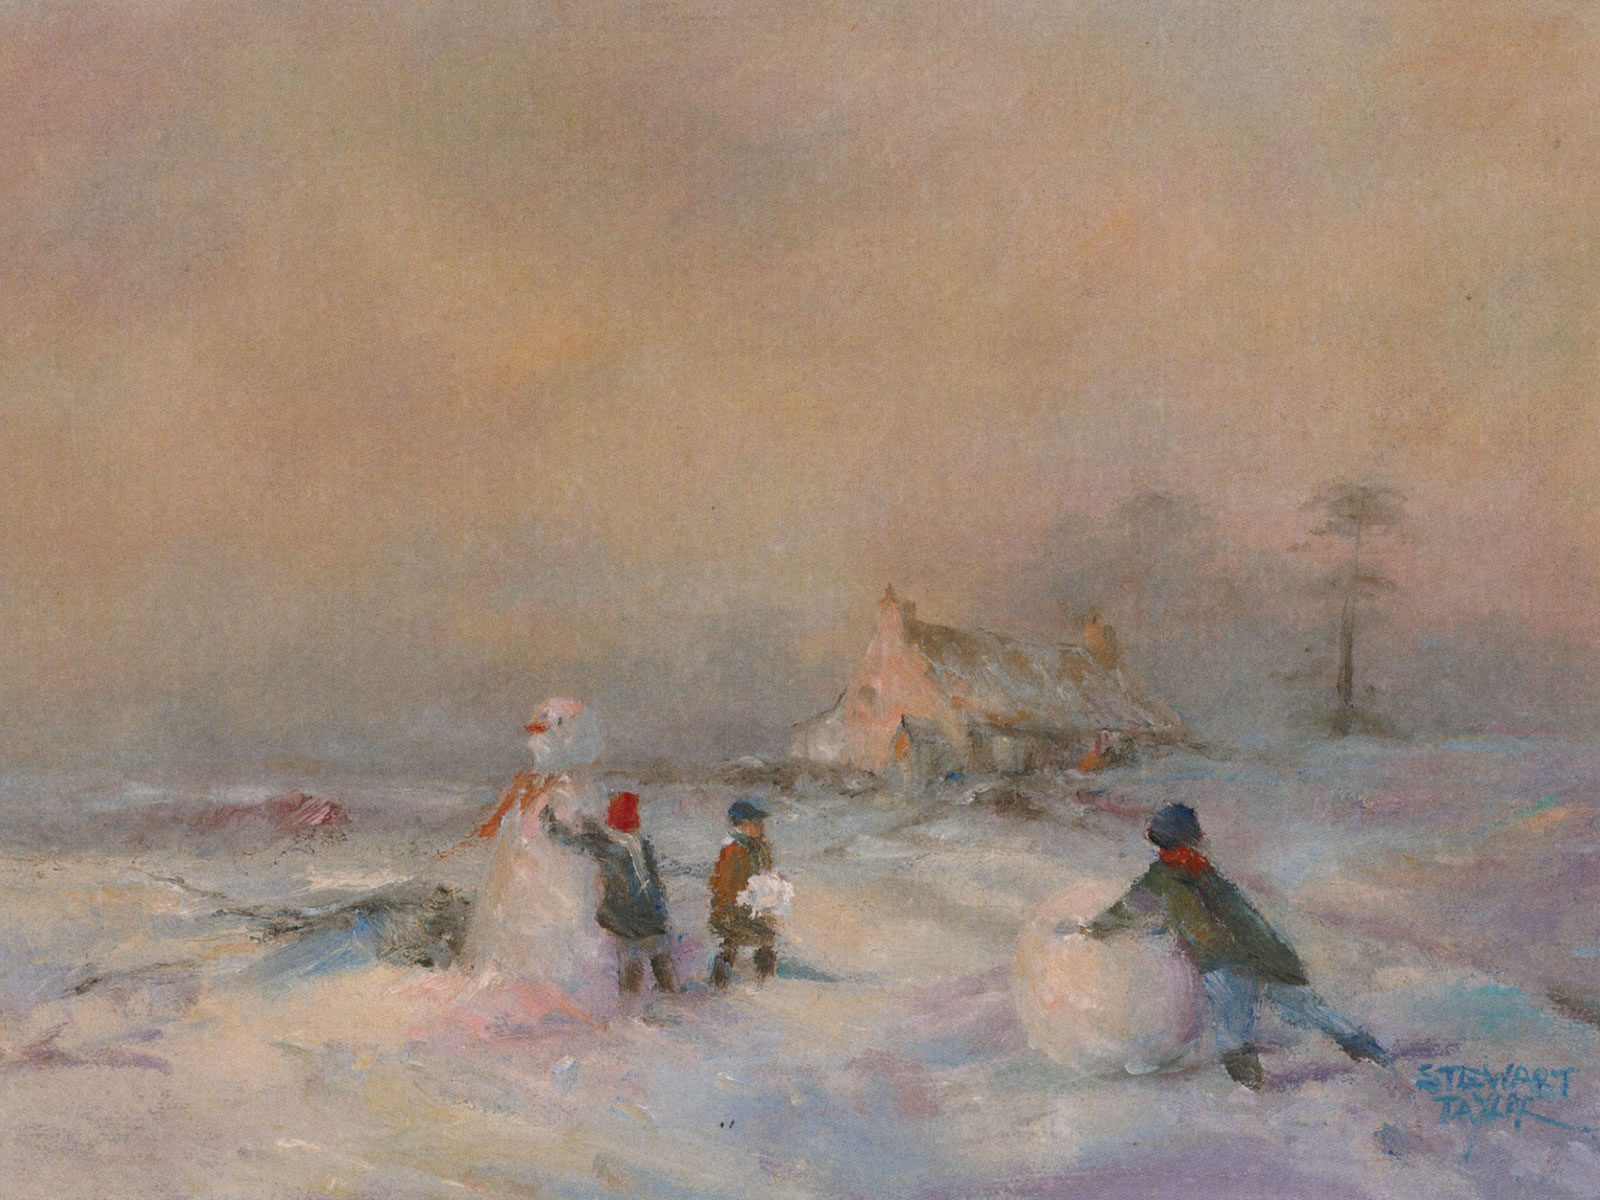 Children at play in the snow in this oil painting by Stewart Taylor